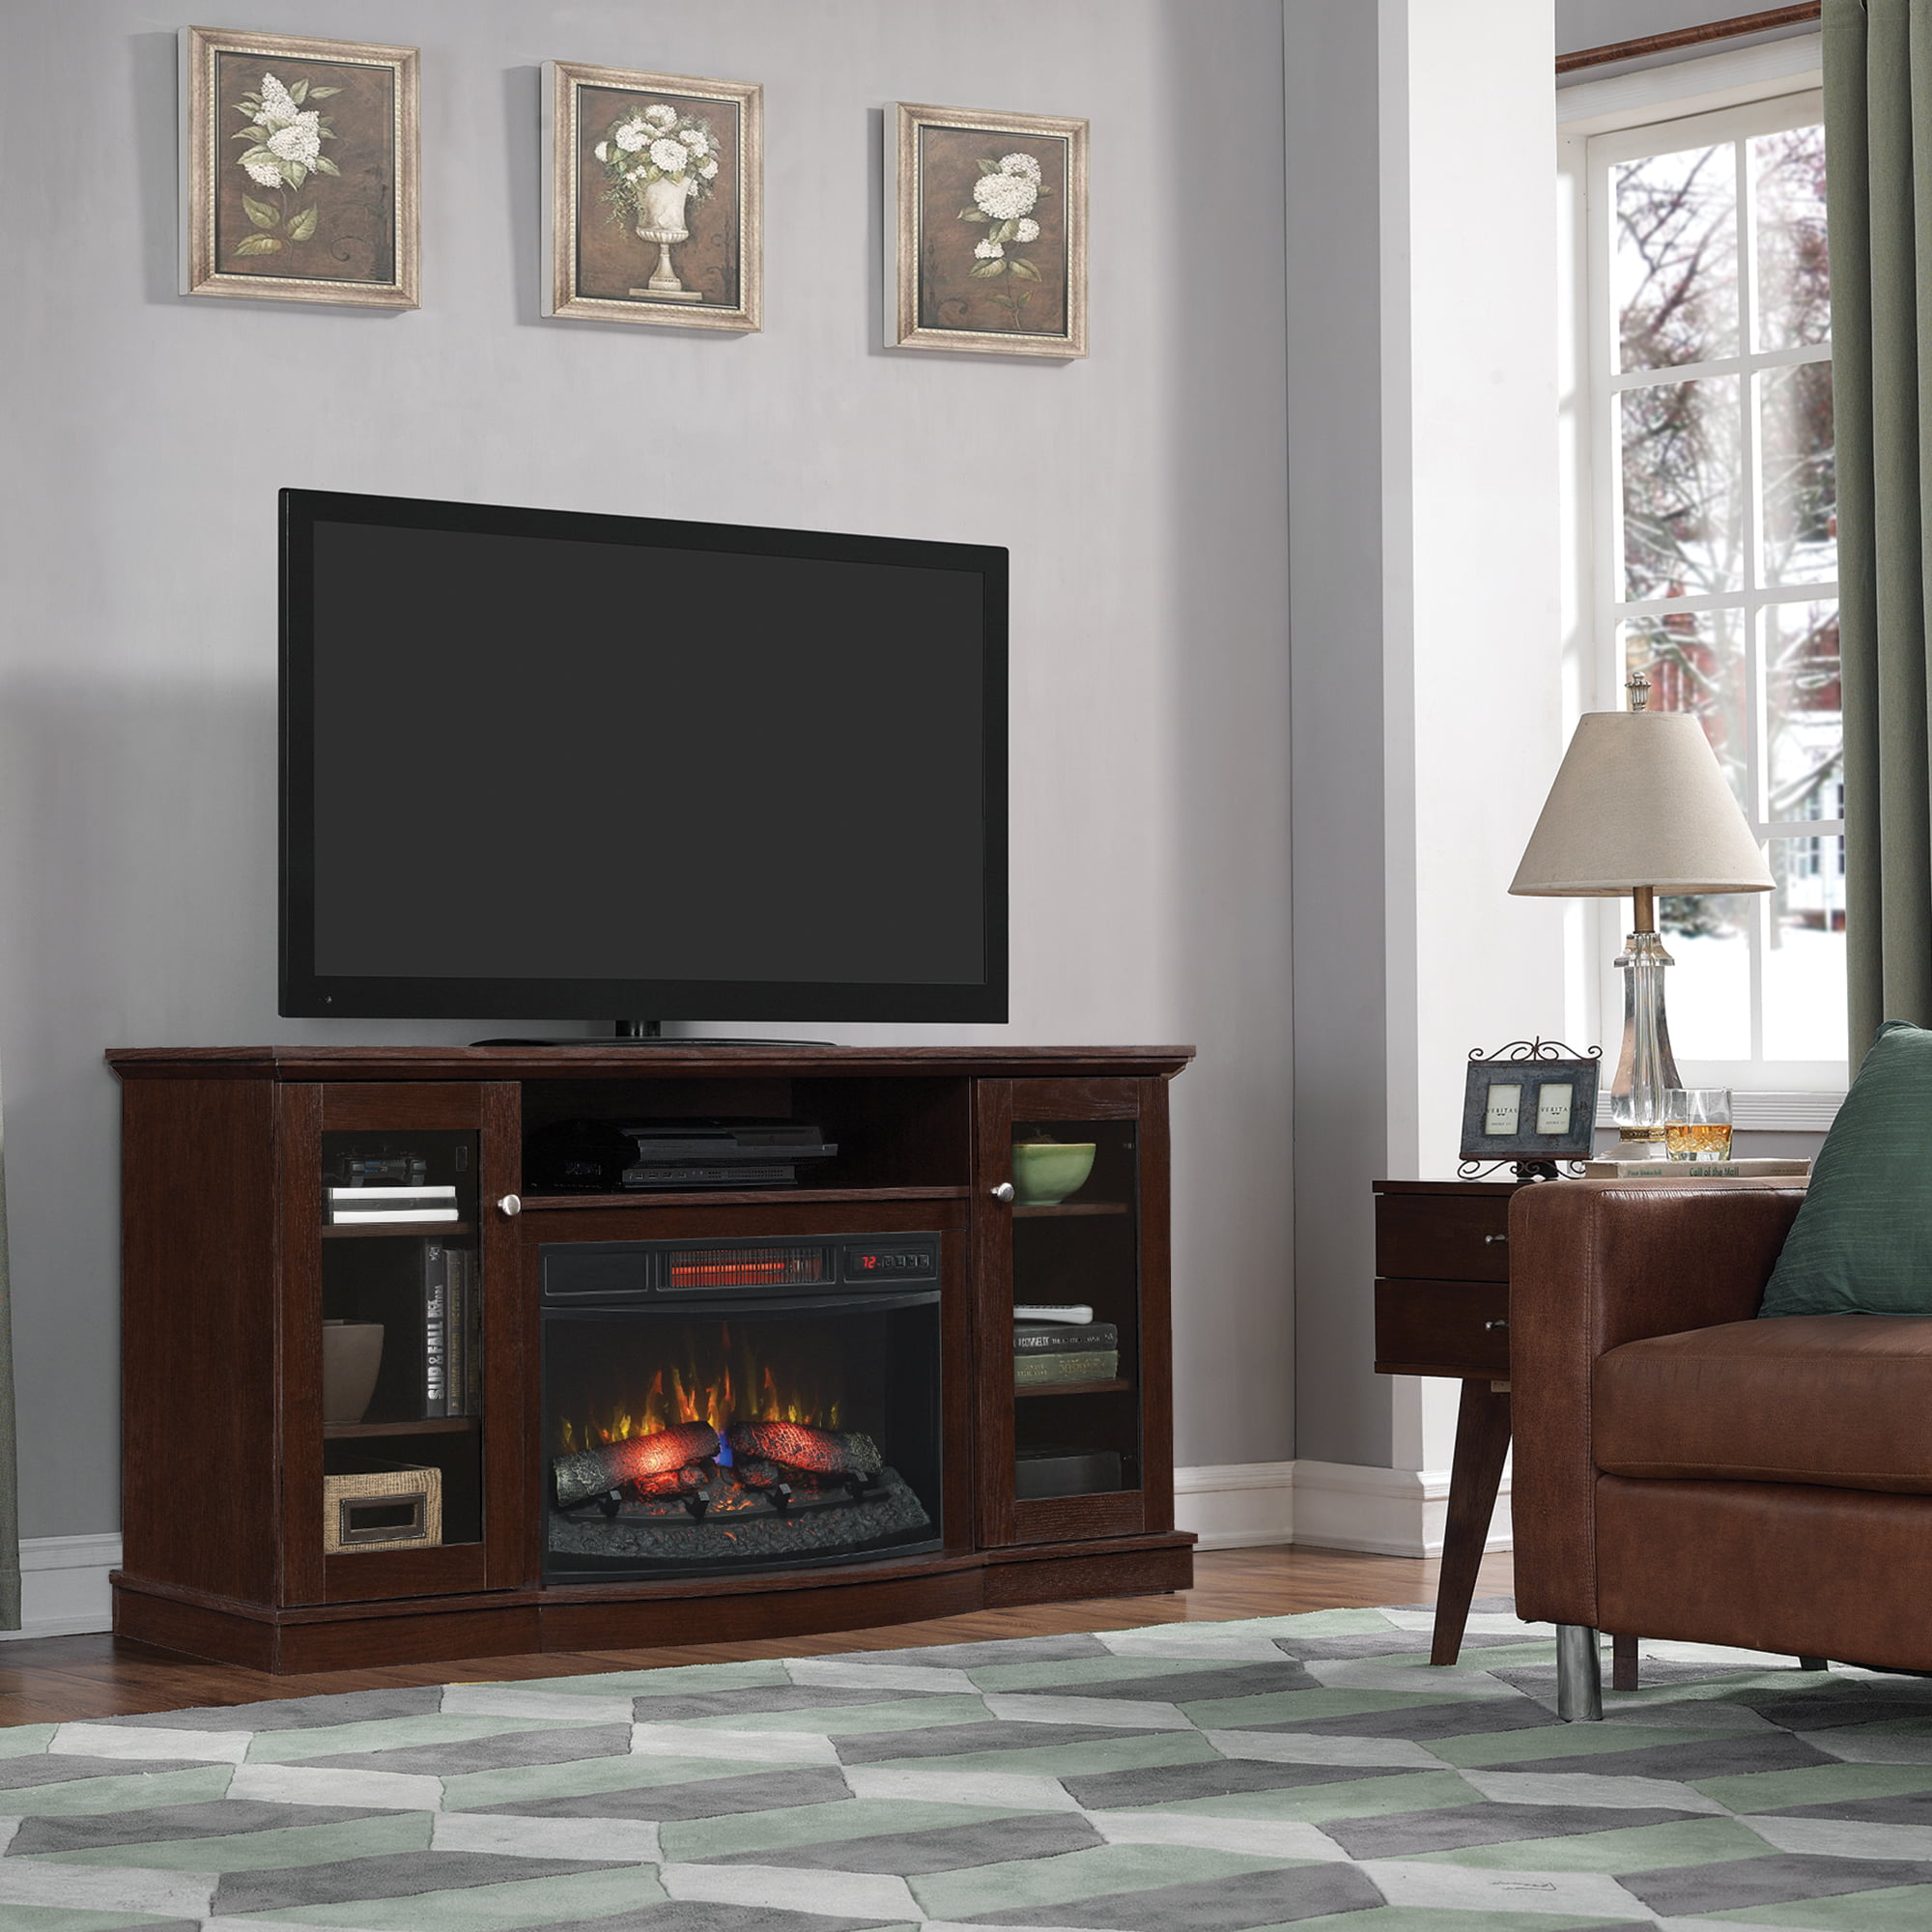 Decor Flame Electric Space Heater Fireplace with 38\